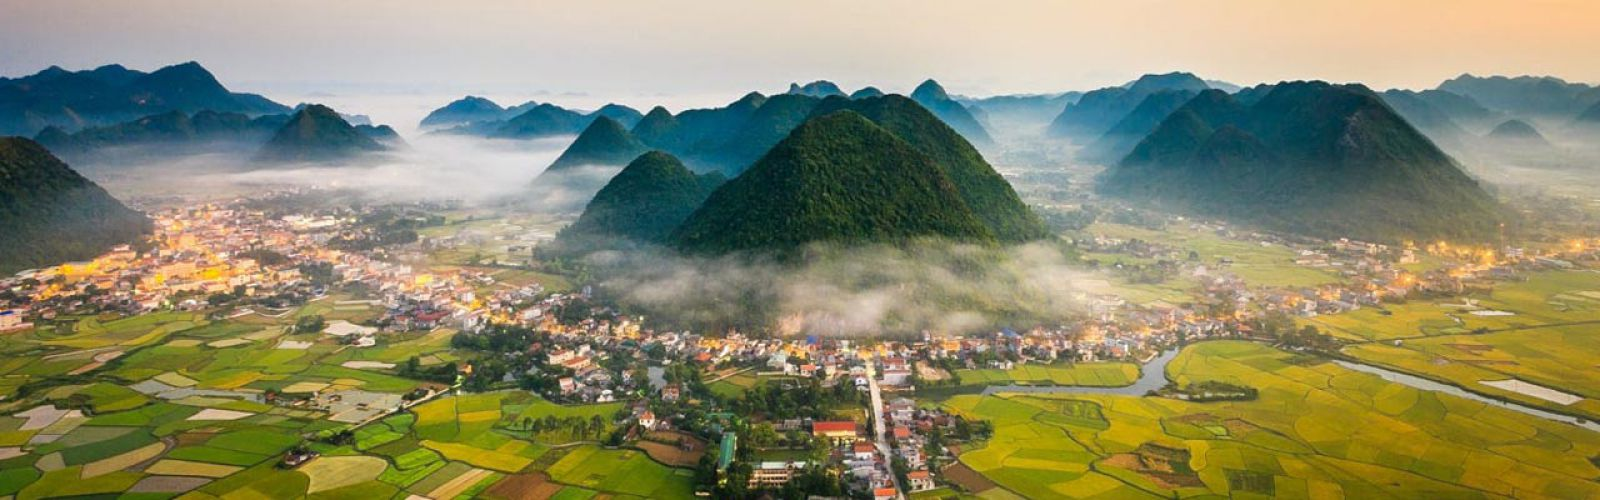 Vietnam Tours and Sightseeing